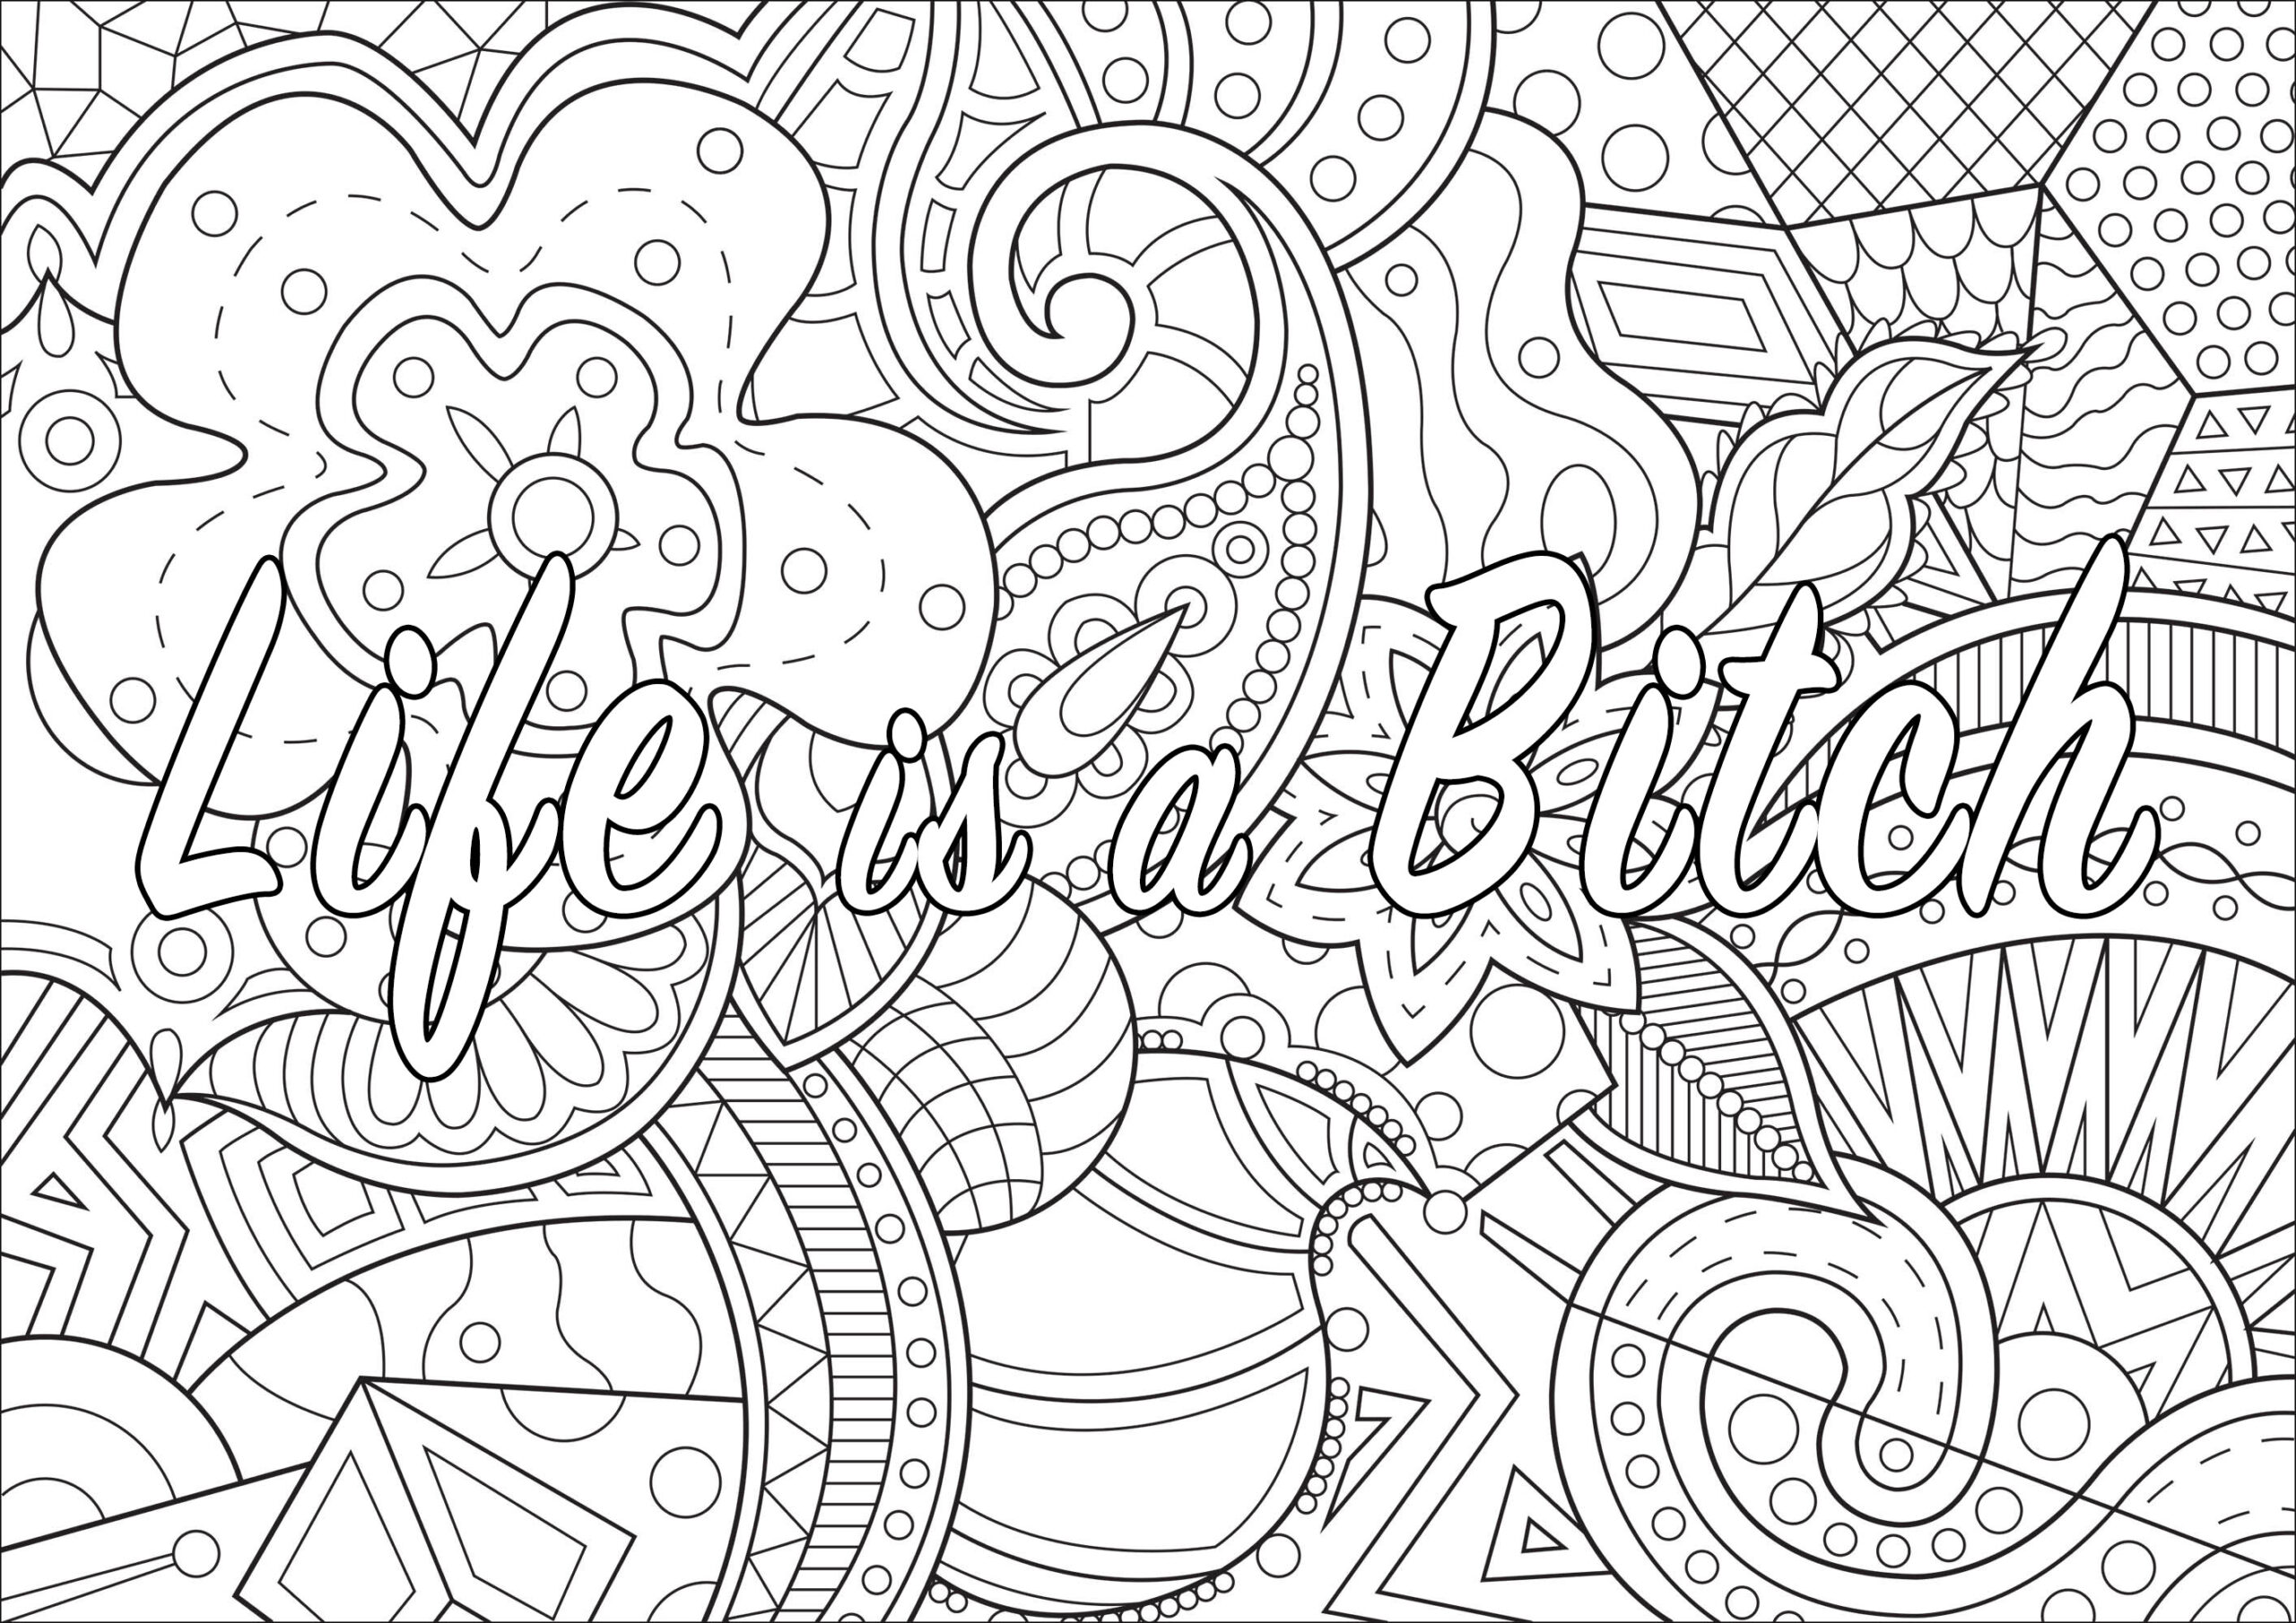 life is swear word coloring adult curse words hot pink magenta sheets for girls cursive coloring pages Curse Word Coloring Page